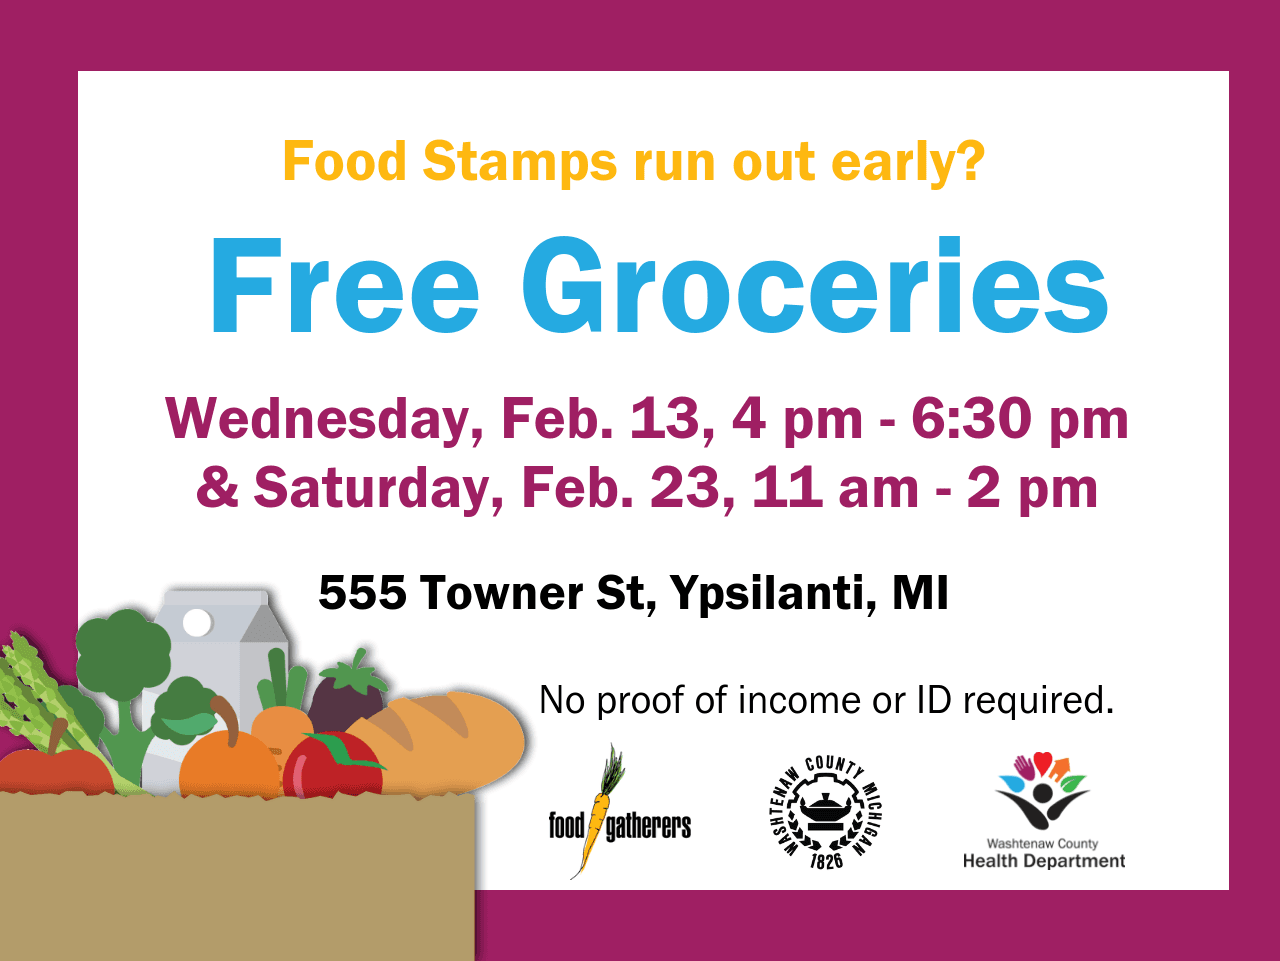 Free groceries announcement